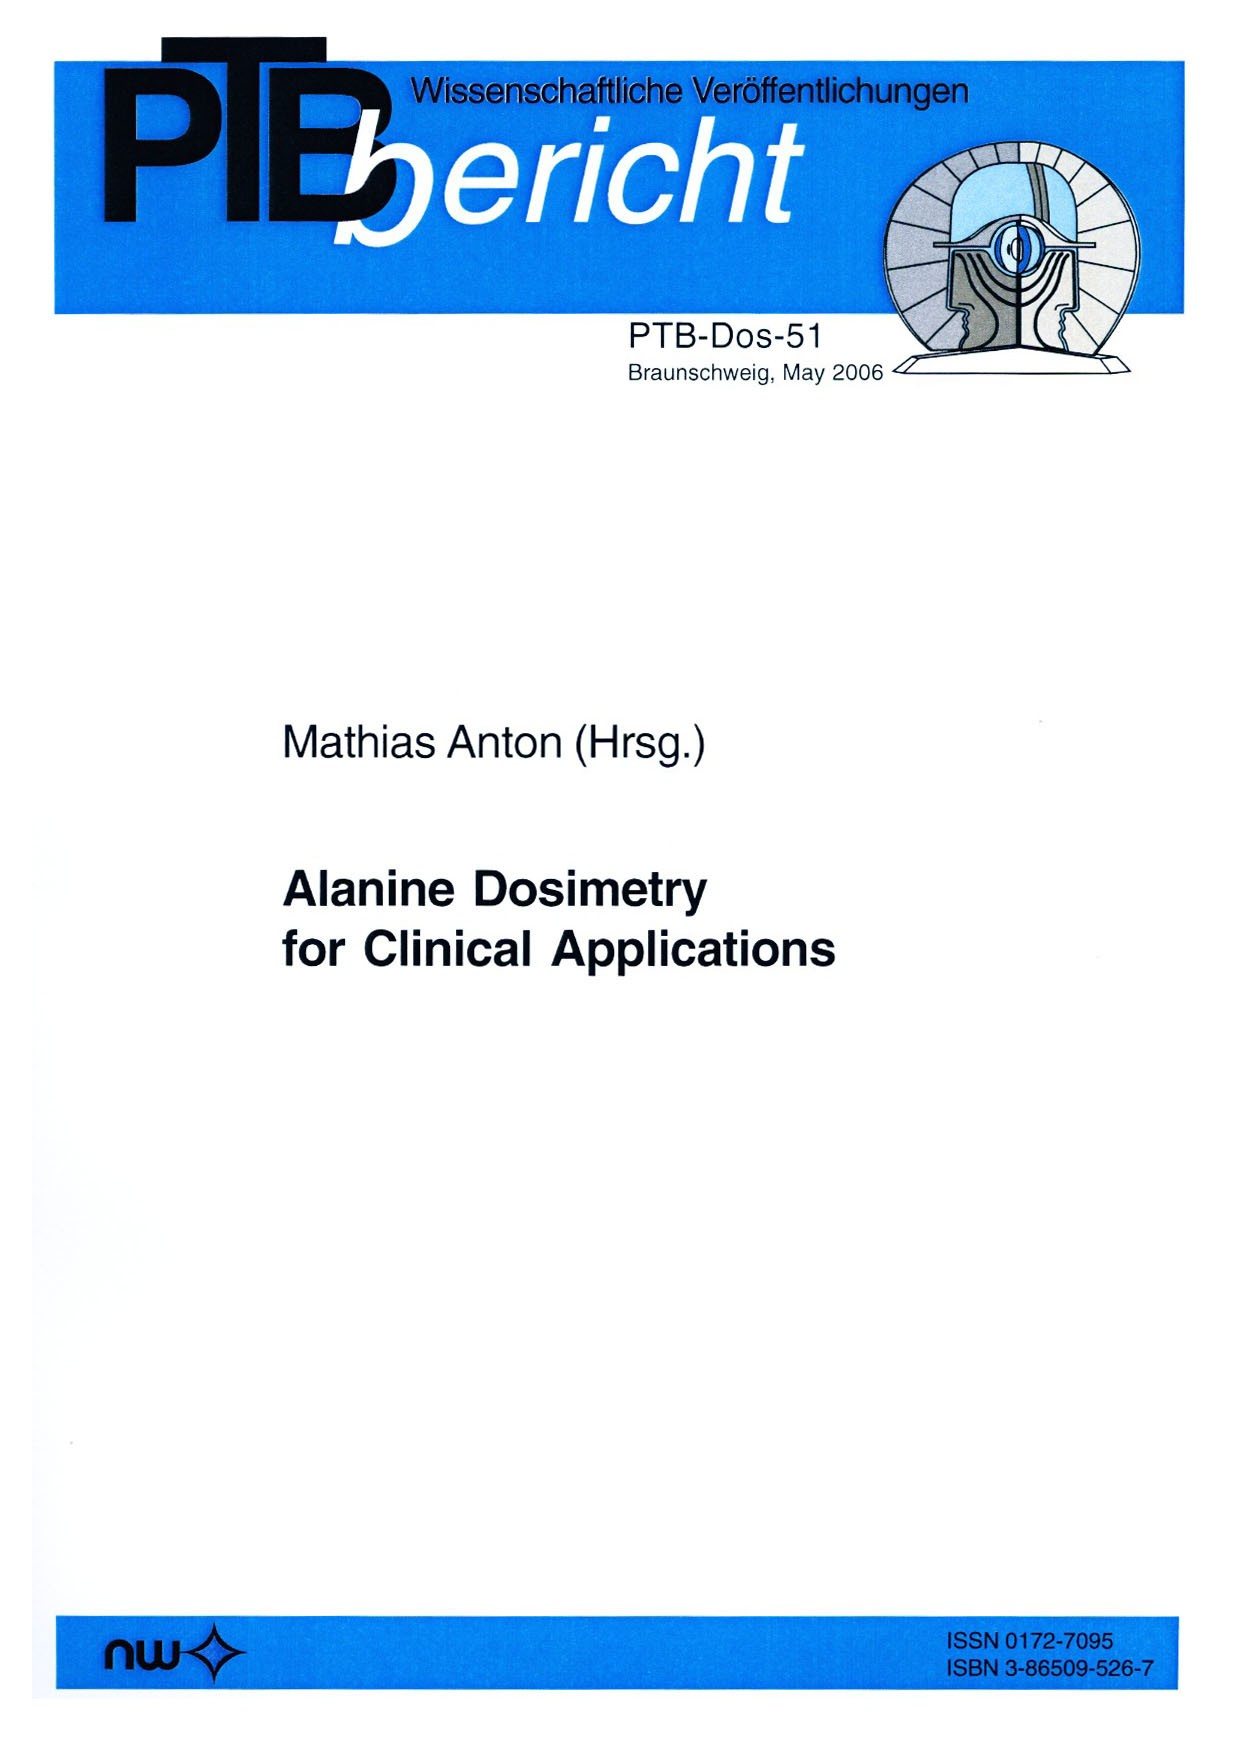 Alanine Dosimetry for Clinical Applications